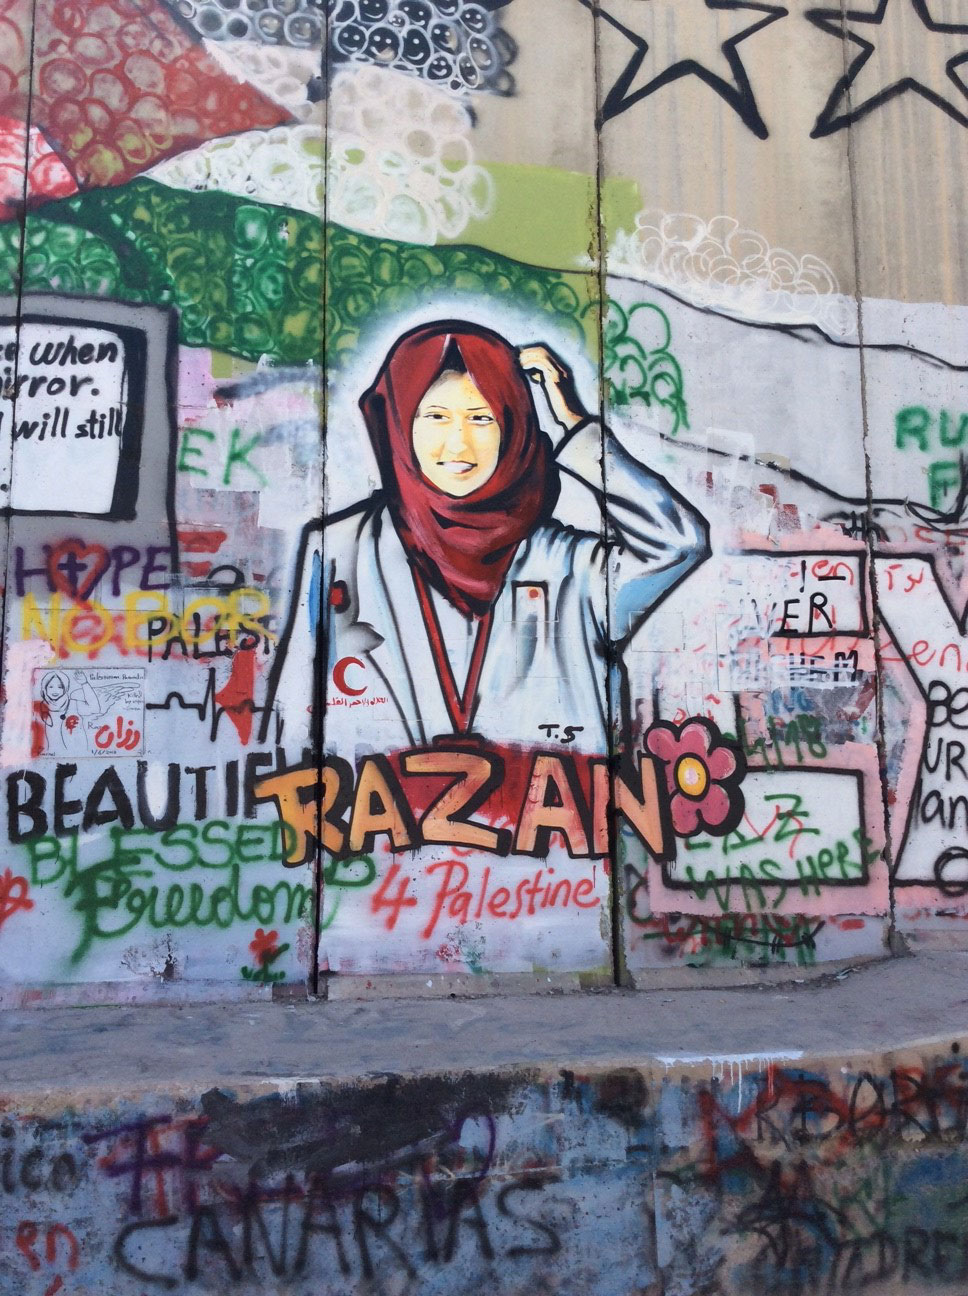 Twenty-one-year-old medical aid worker Razan al-Najjar, memorialized on Israel's separation barrier/wall in Bethlehem. She was shot dead at the border fence between Gaza and Israel on June 1.